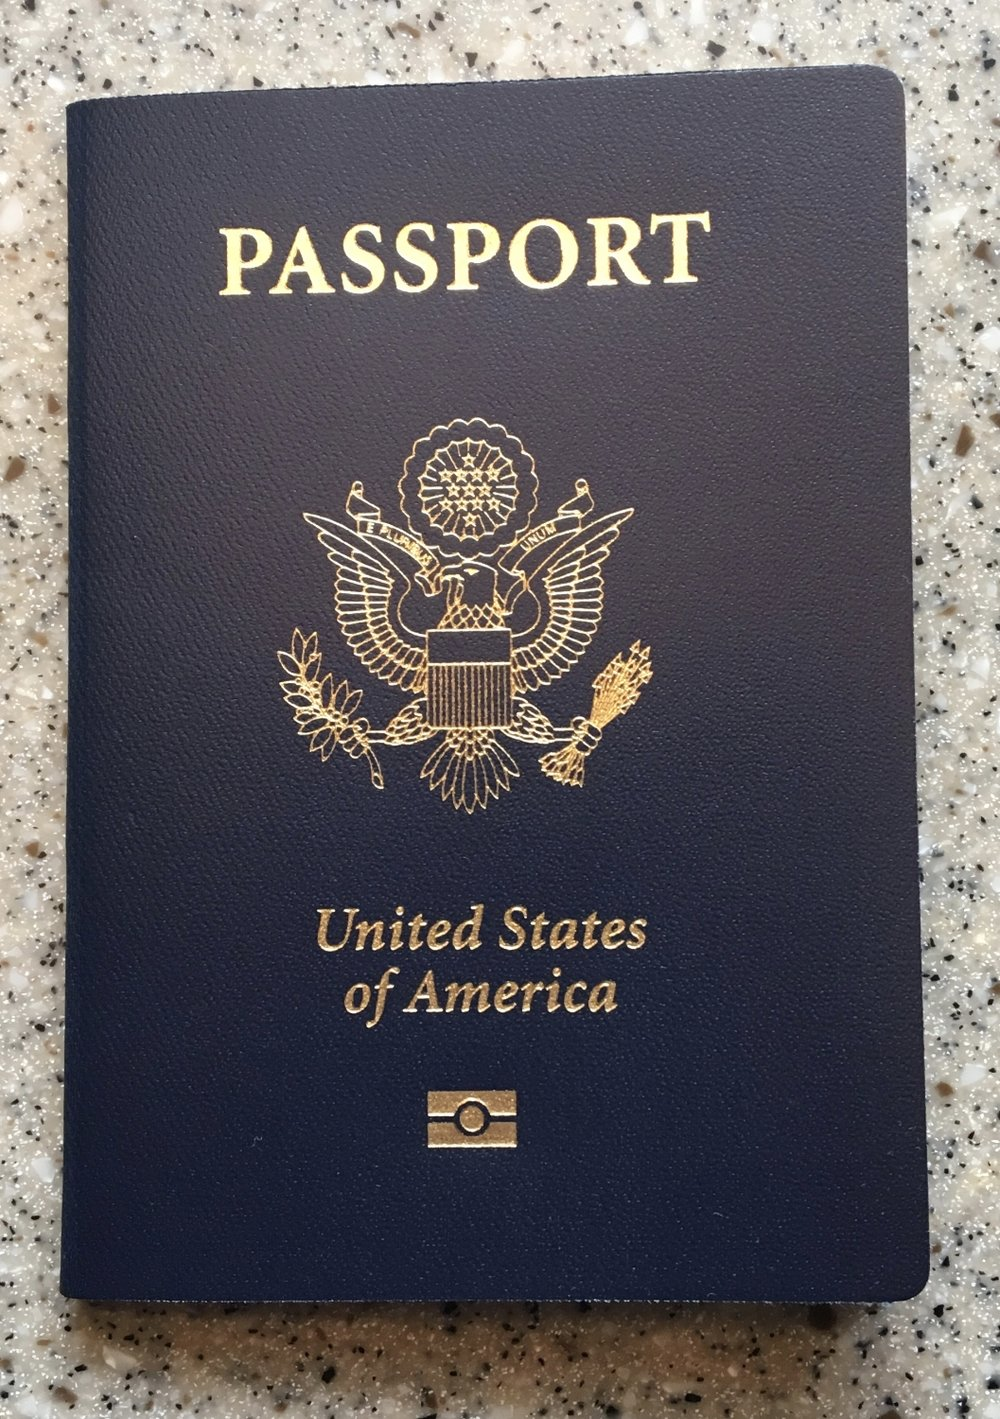 US PASSPORT VALID 6 MONTHS AFTER TRIP COMPLETION